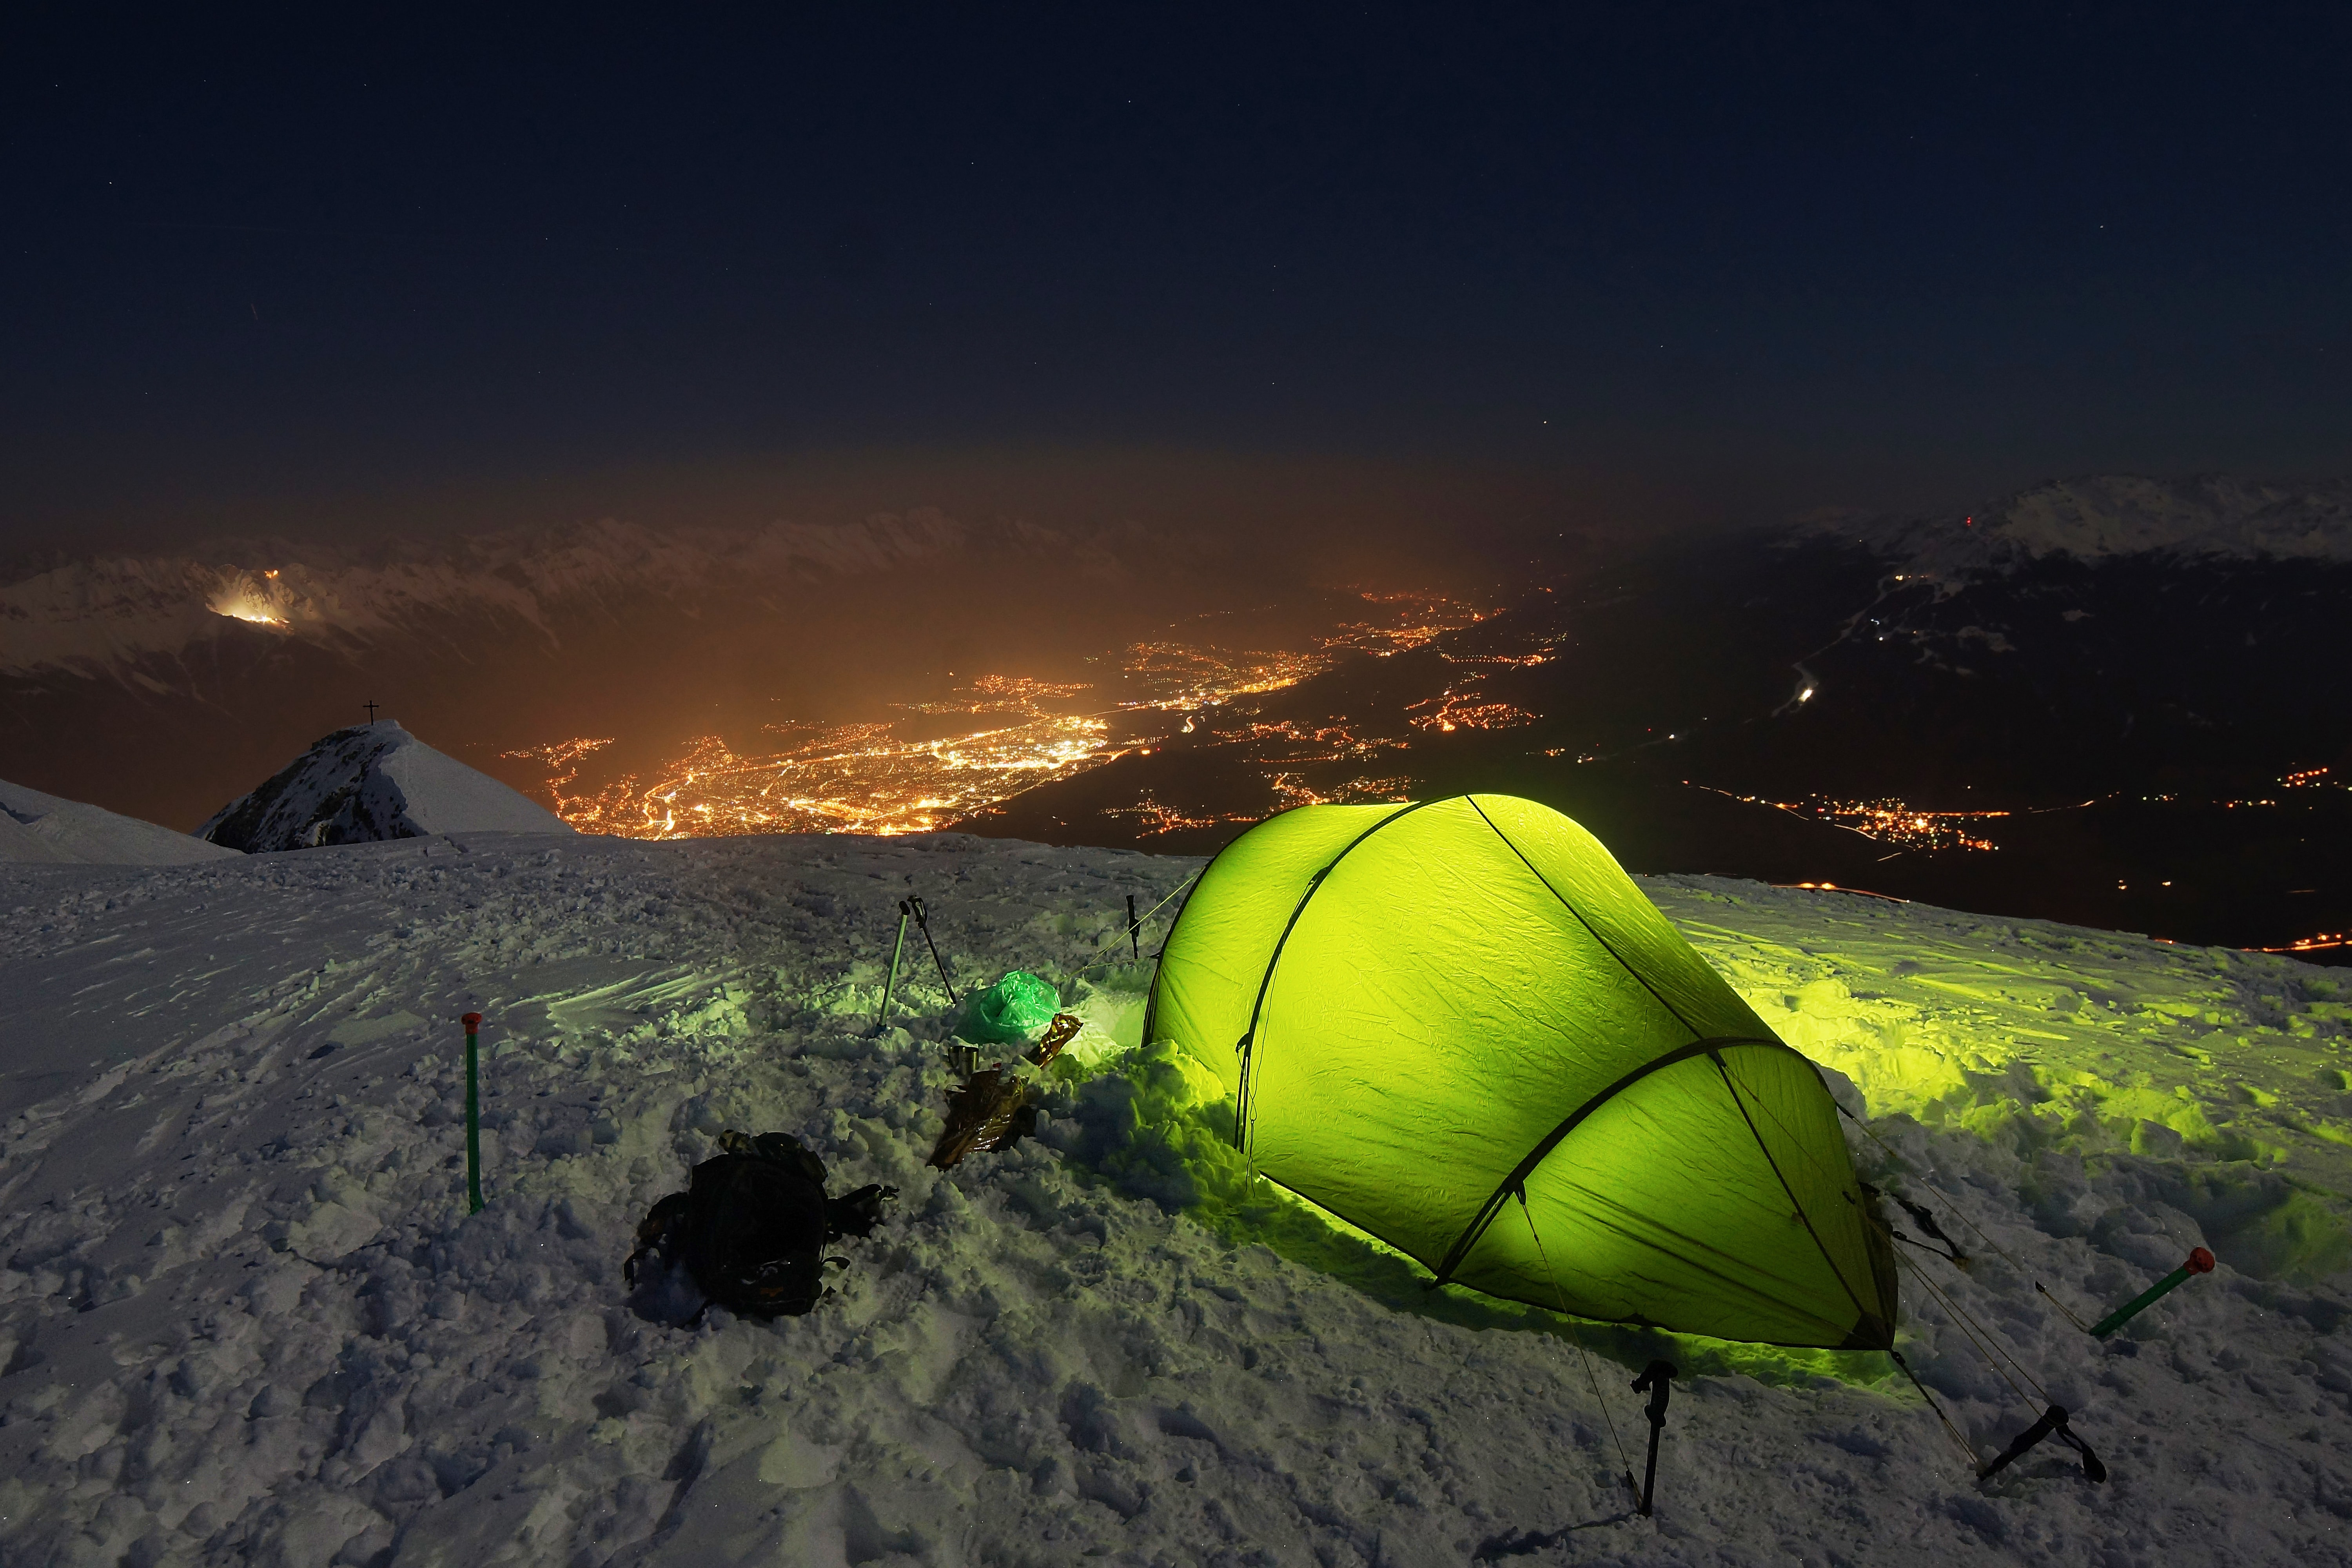 A green tent with green lights inside on top of a snow covered mountain overlooking the city lights.